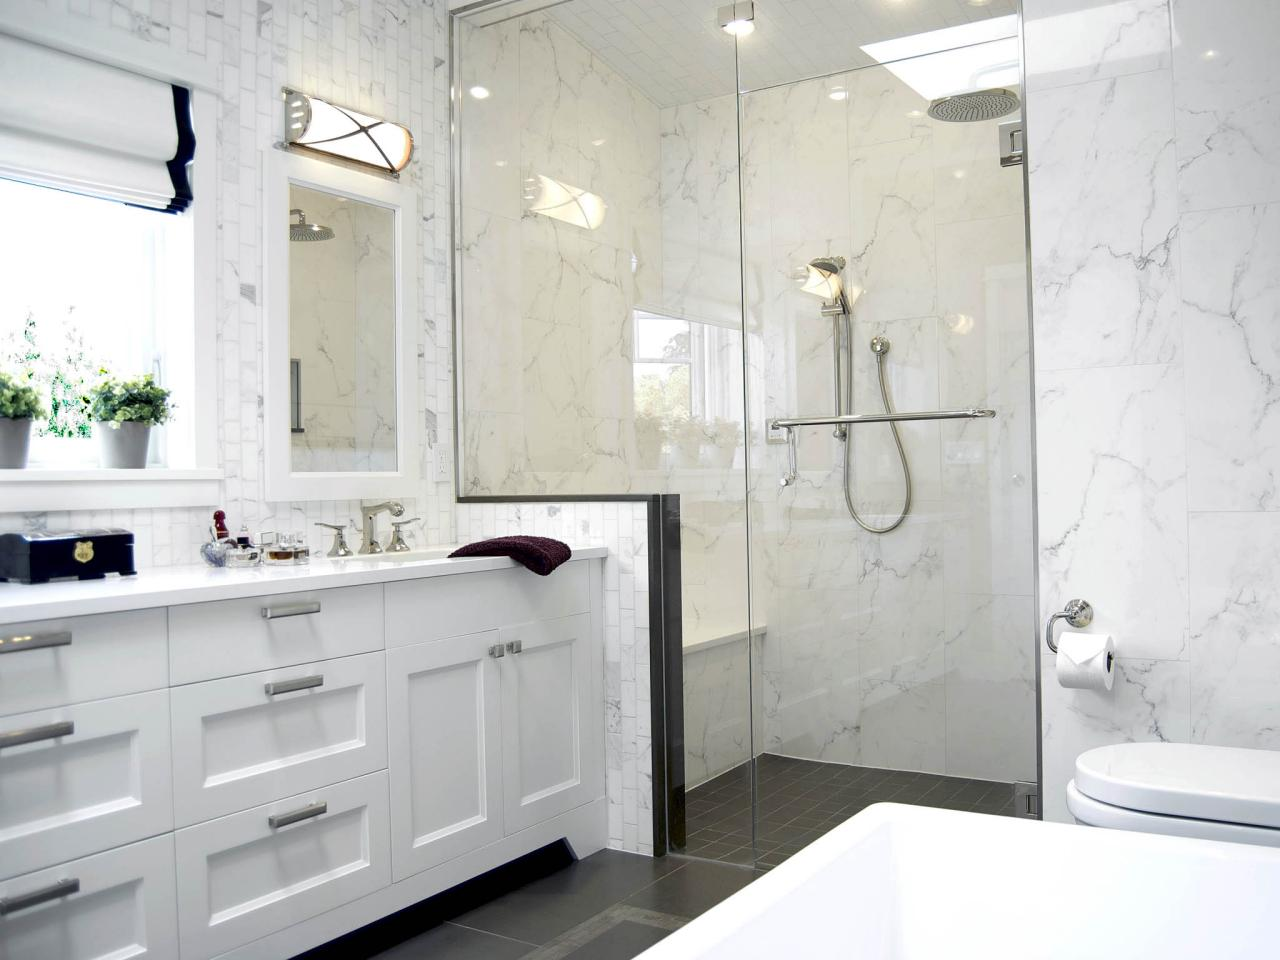 The year 39 s best bathrooms nkba bath design finalists for for Bathroom designs hgtv